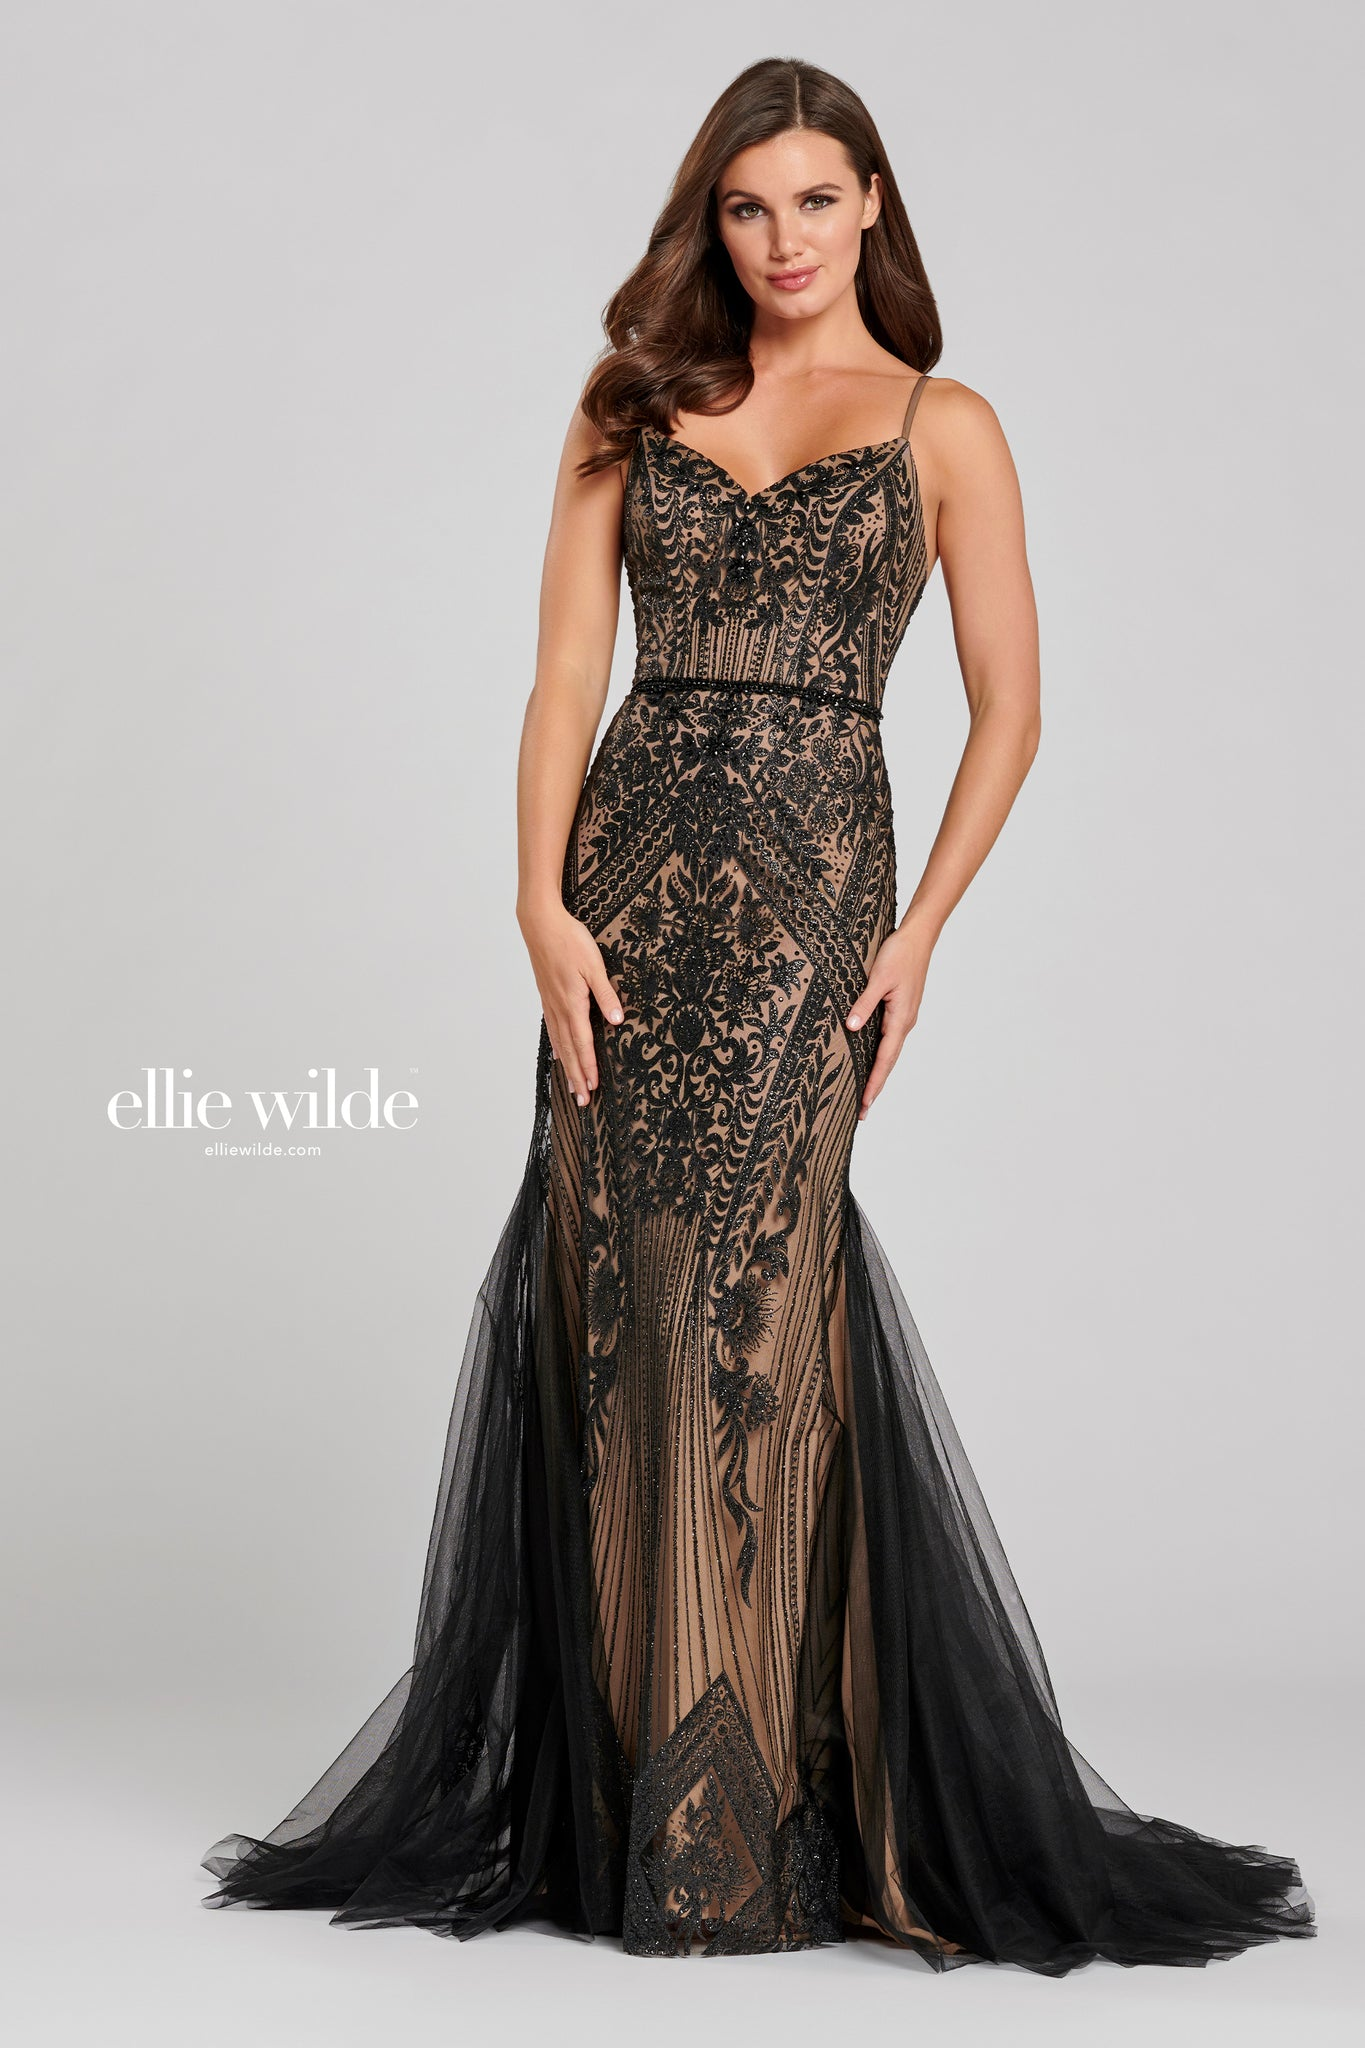 Ellie Wilde Black Chiffon Gown - Gissings Boutique